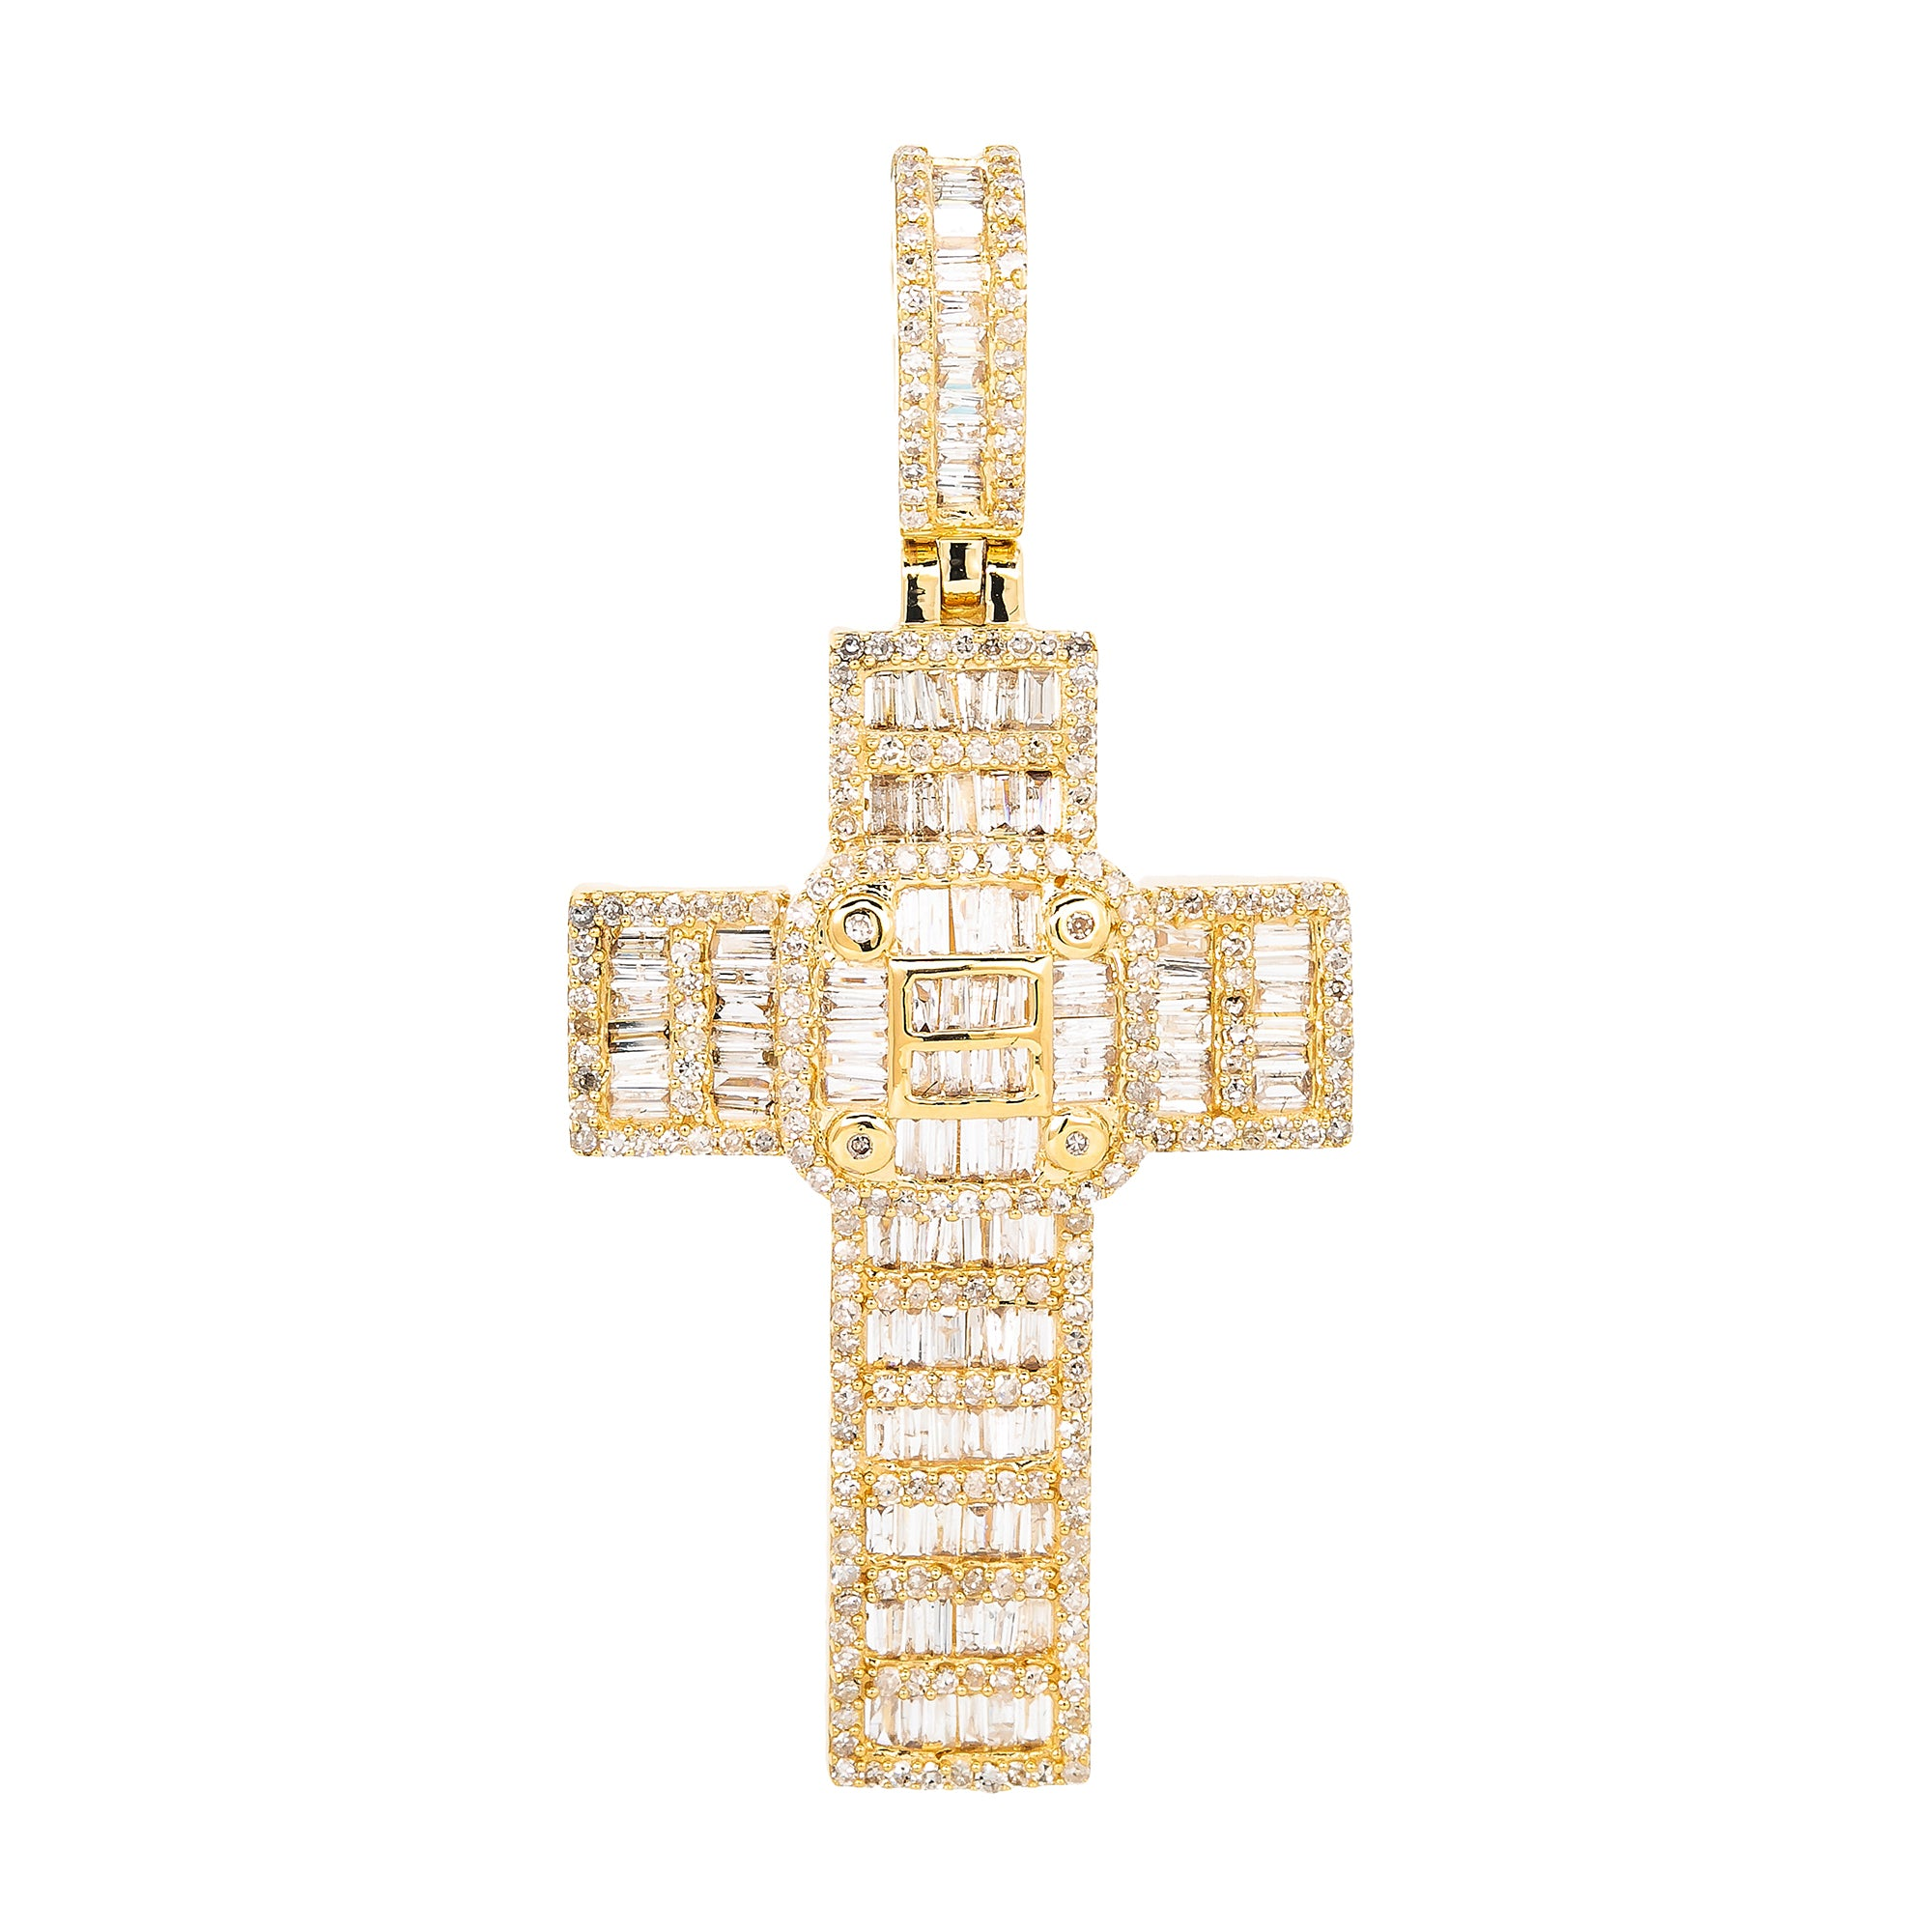 Unisex 14K Yellow Gold Cross Pendant with 1.55 CT Diamonds